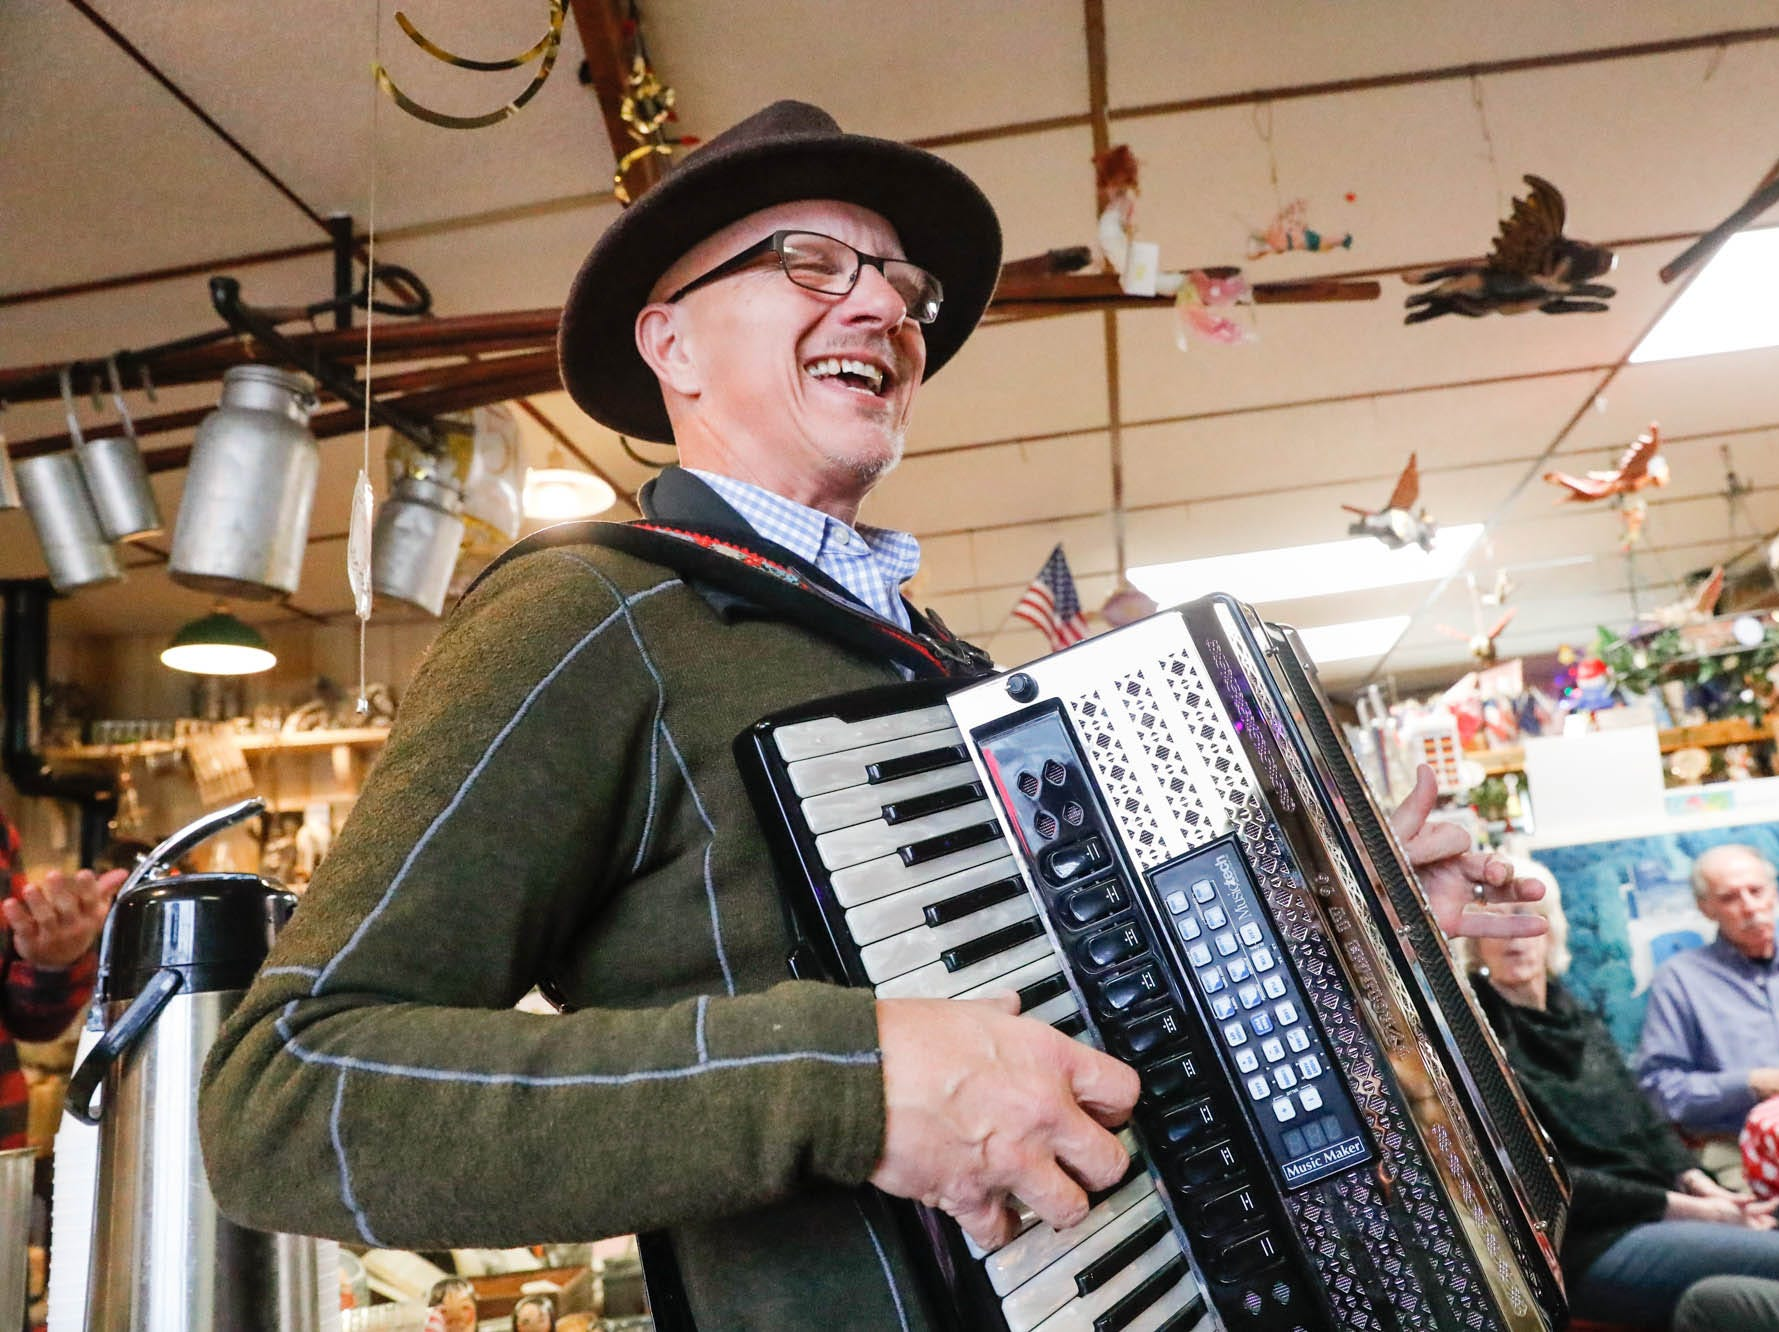 Norman Gwaltney plays the accordion during a party celebrating the 50th year in business at Heidelberg Haus Cafe and Bakery, 7625 Pendleton Pike, Indianapolis, on Saturday, Dec. 8th, 2018. The cafe, bakery, and German grocery is well known for its extensive collection of German Kitsch.